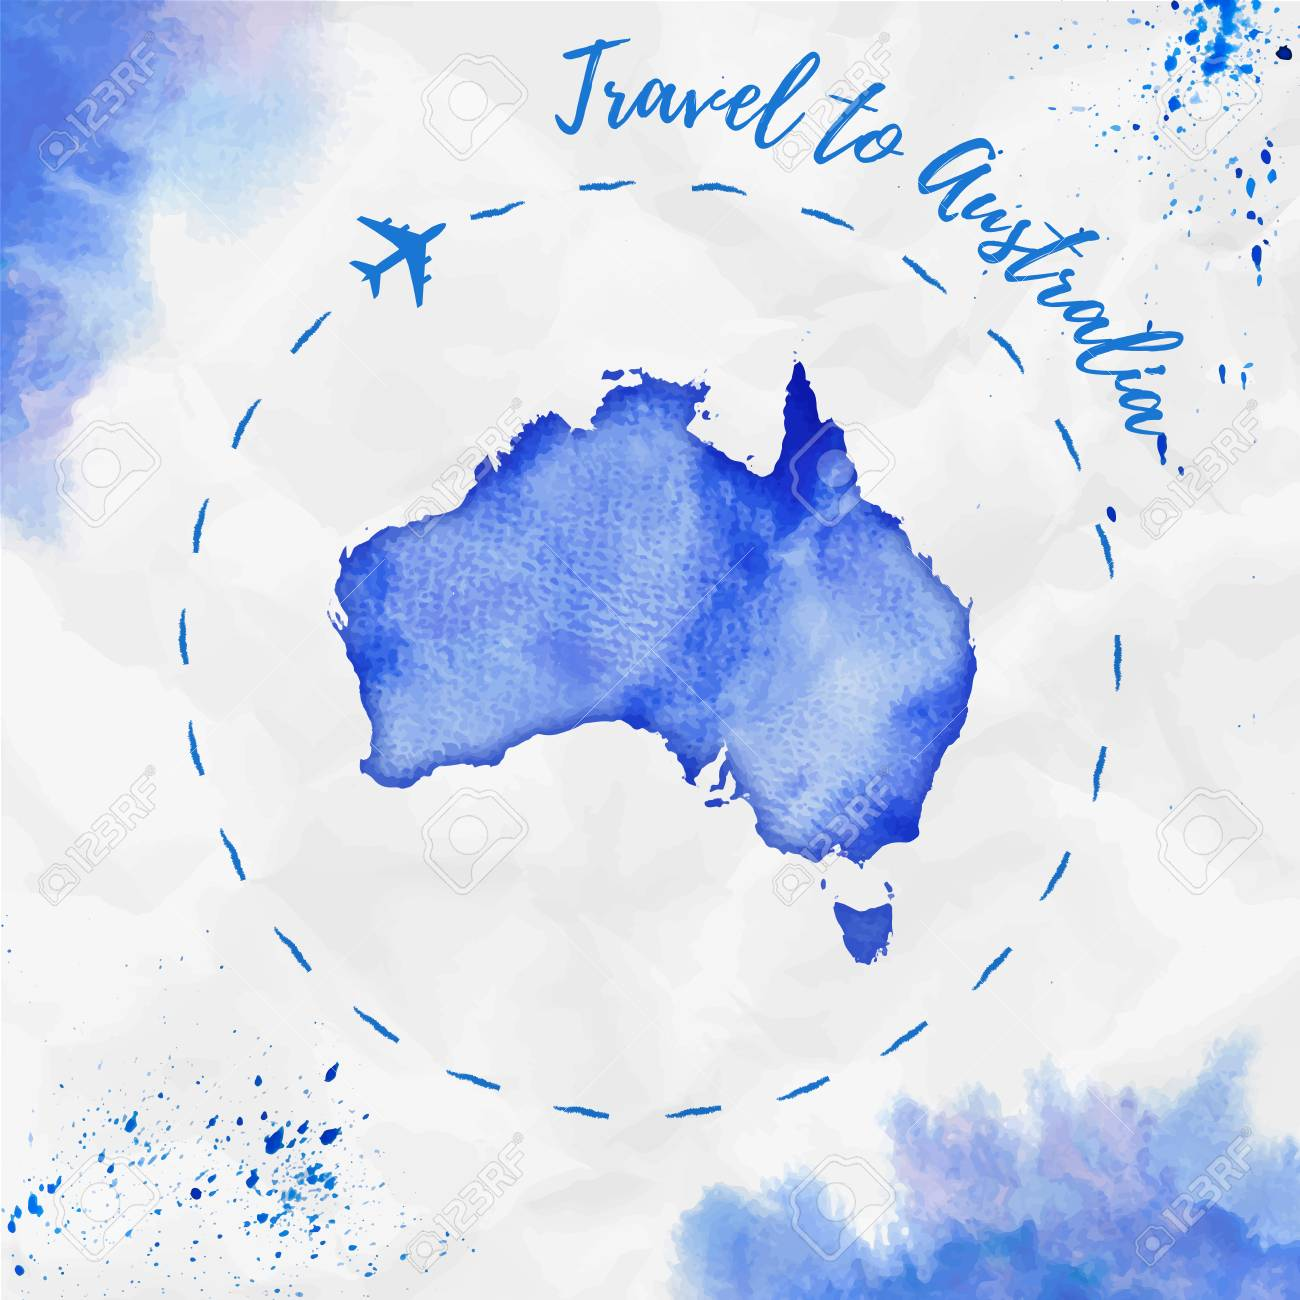 australia watercolor map in blue colors travel to australia poster with airplane trace and handpainted